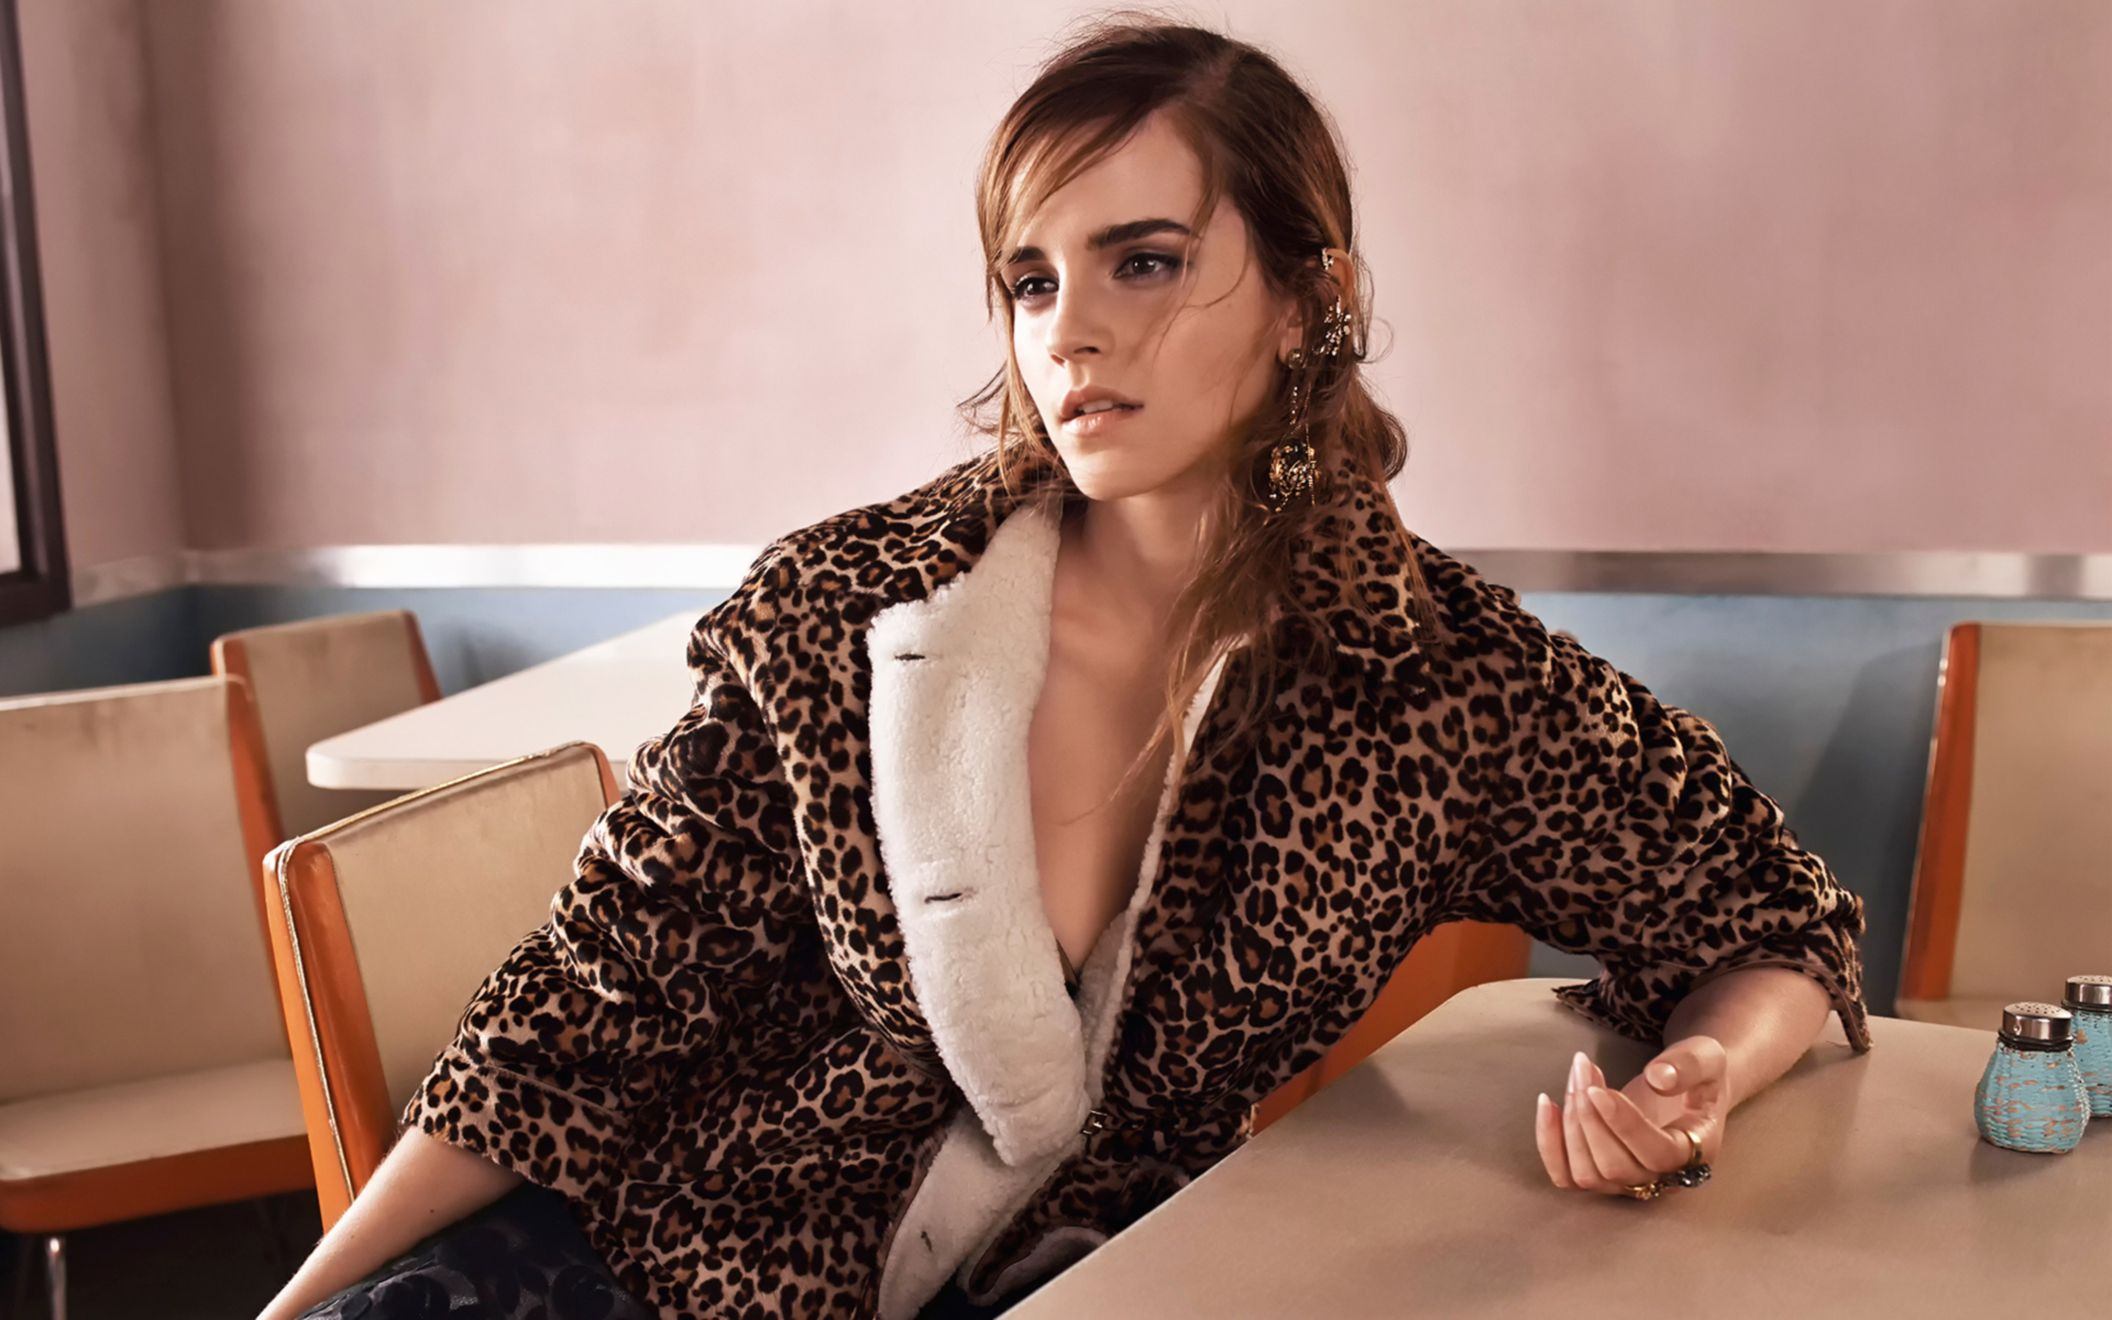 Download free HD Emma Watson 2017 Hot Wide Wallpaper, image